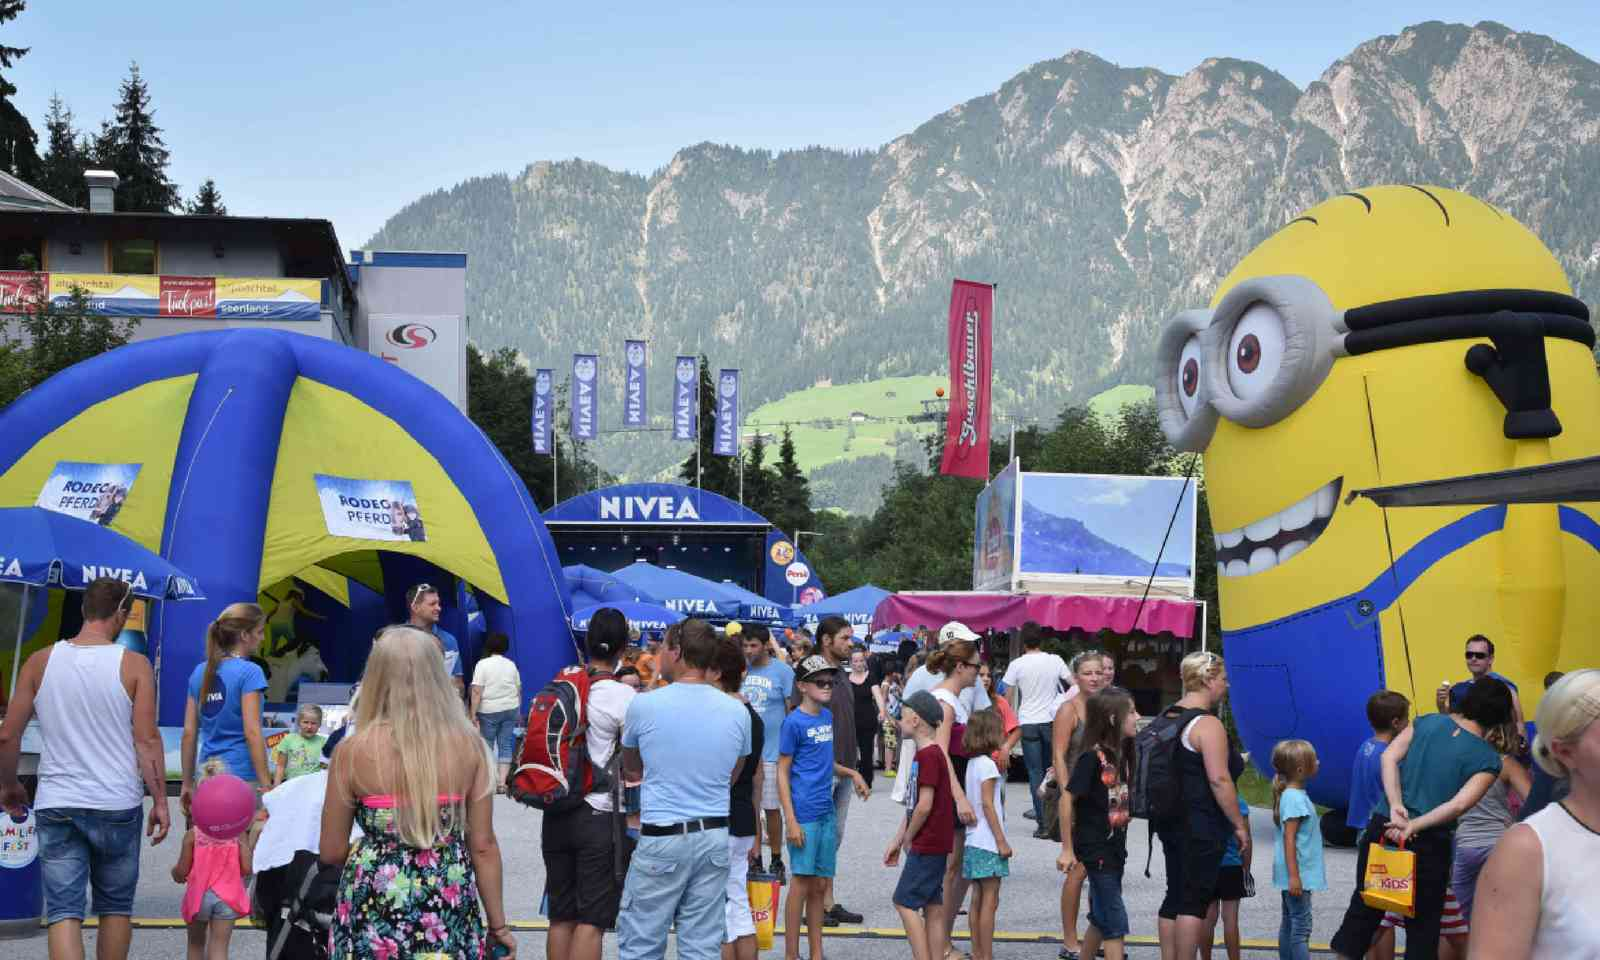 Nivea Familienfest in Alpbach (alpbachtal.at)